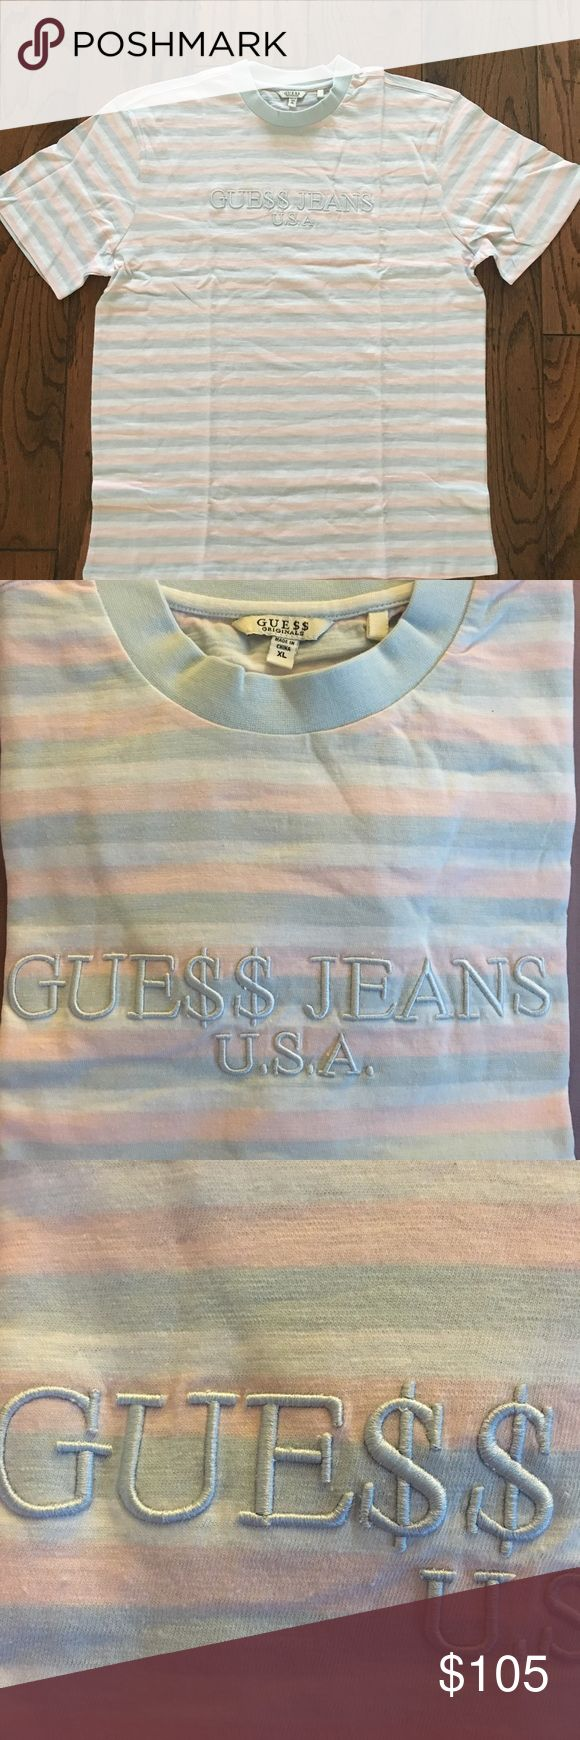 Guess x Asap Rocky Cotton Candy Shirt Guess x Asap Rocky  Striped Tee Shirt In The Cotton Candy colorway!  Condition: no flaws  Size: XL. Fits slightly oversized  Ships via USPS 1-3 day Priority Mail. Items are shipped the same or next business day. Guess Shirts Tees - Short Sleeve